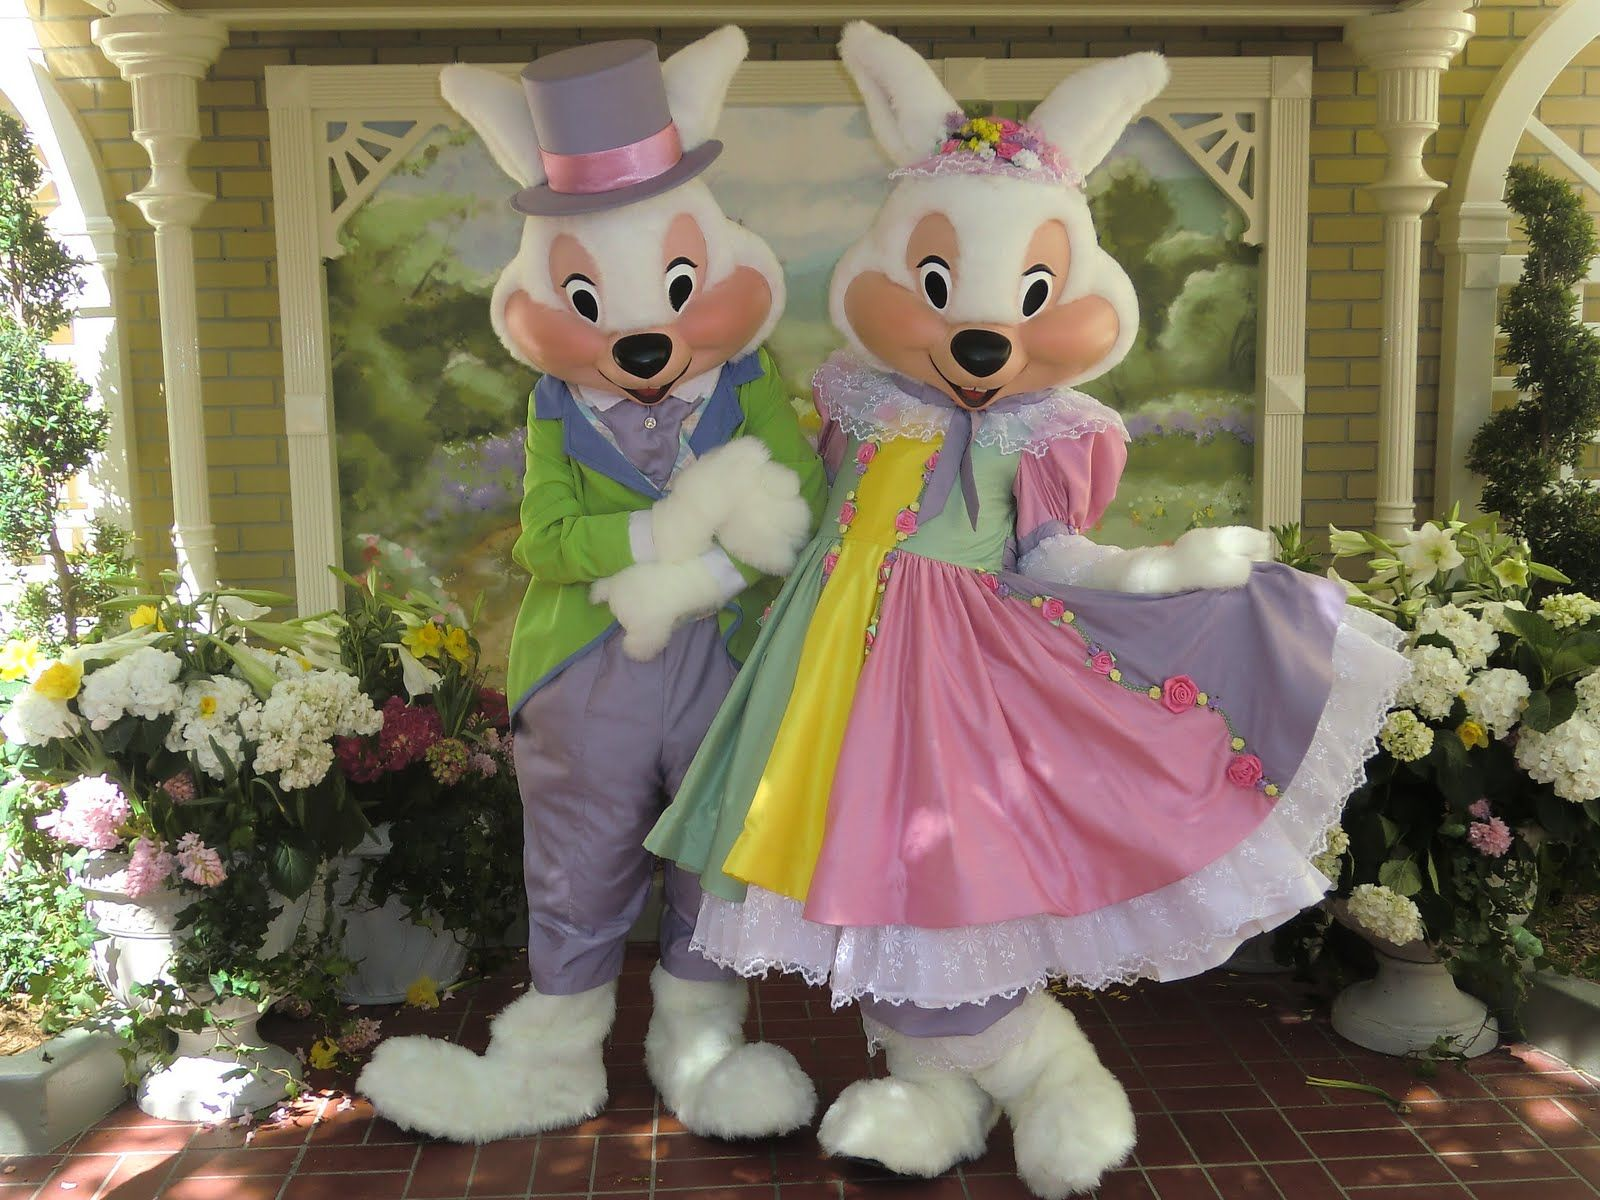 Mr and Mrs Easter Bunny Walt Disney World